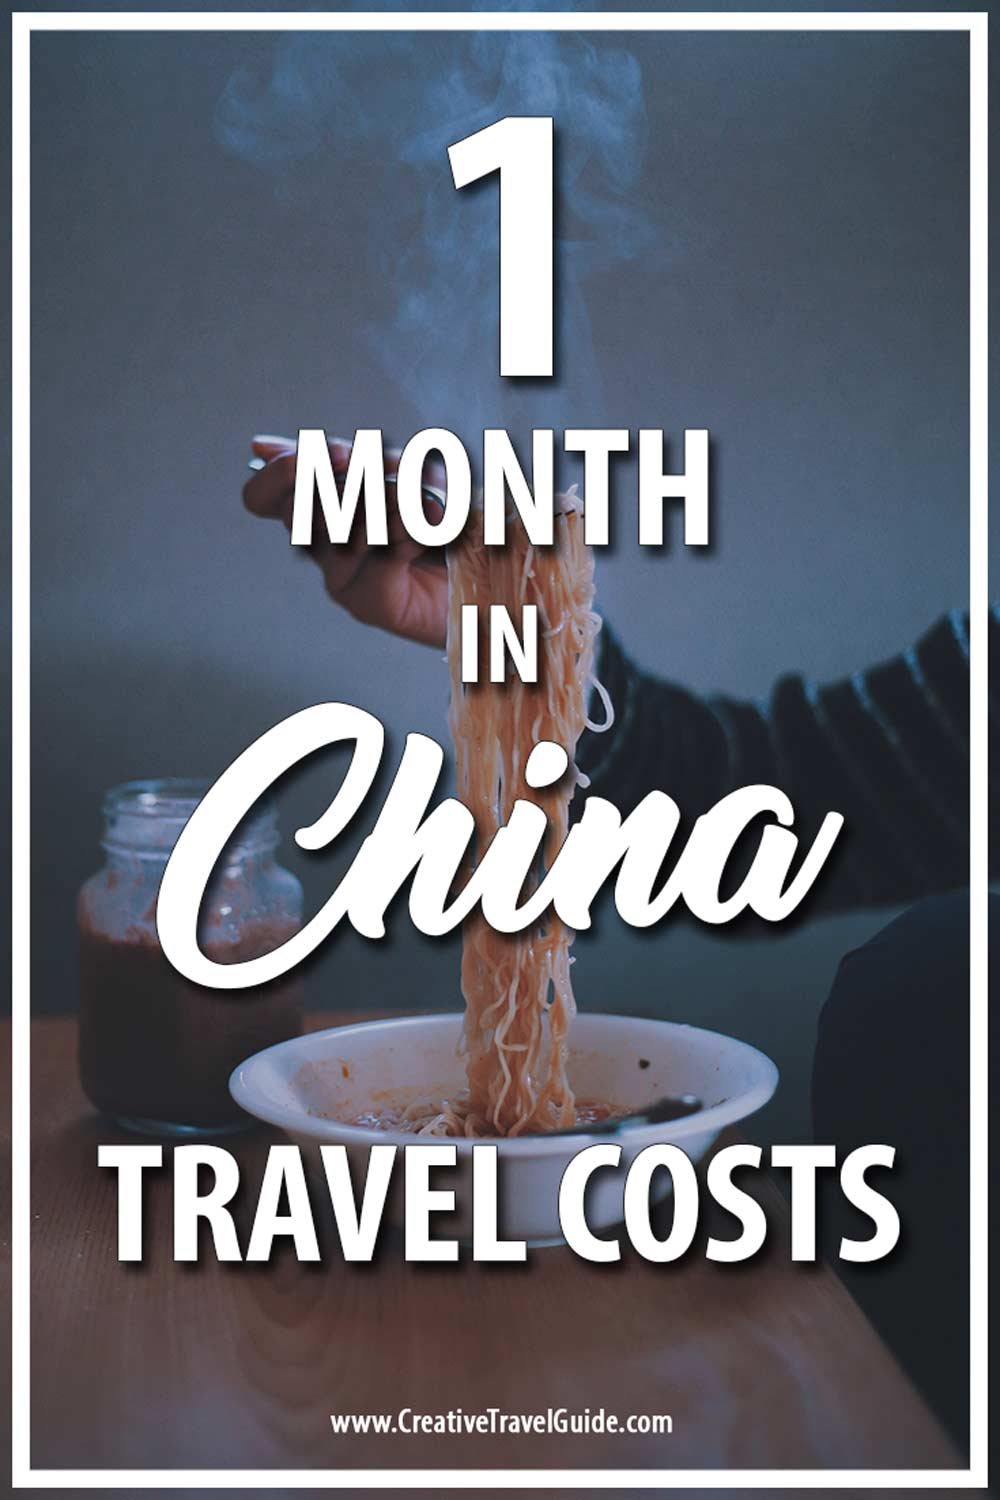 Cost of Travel in China